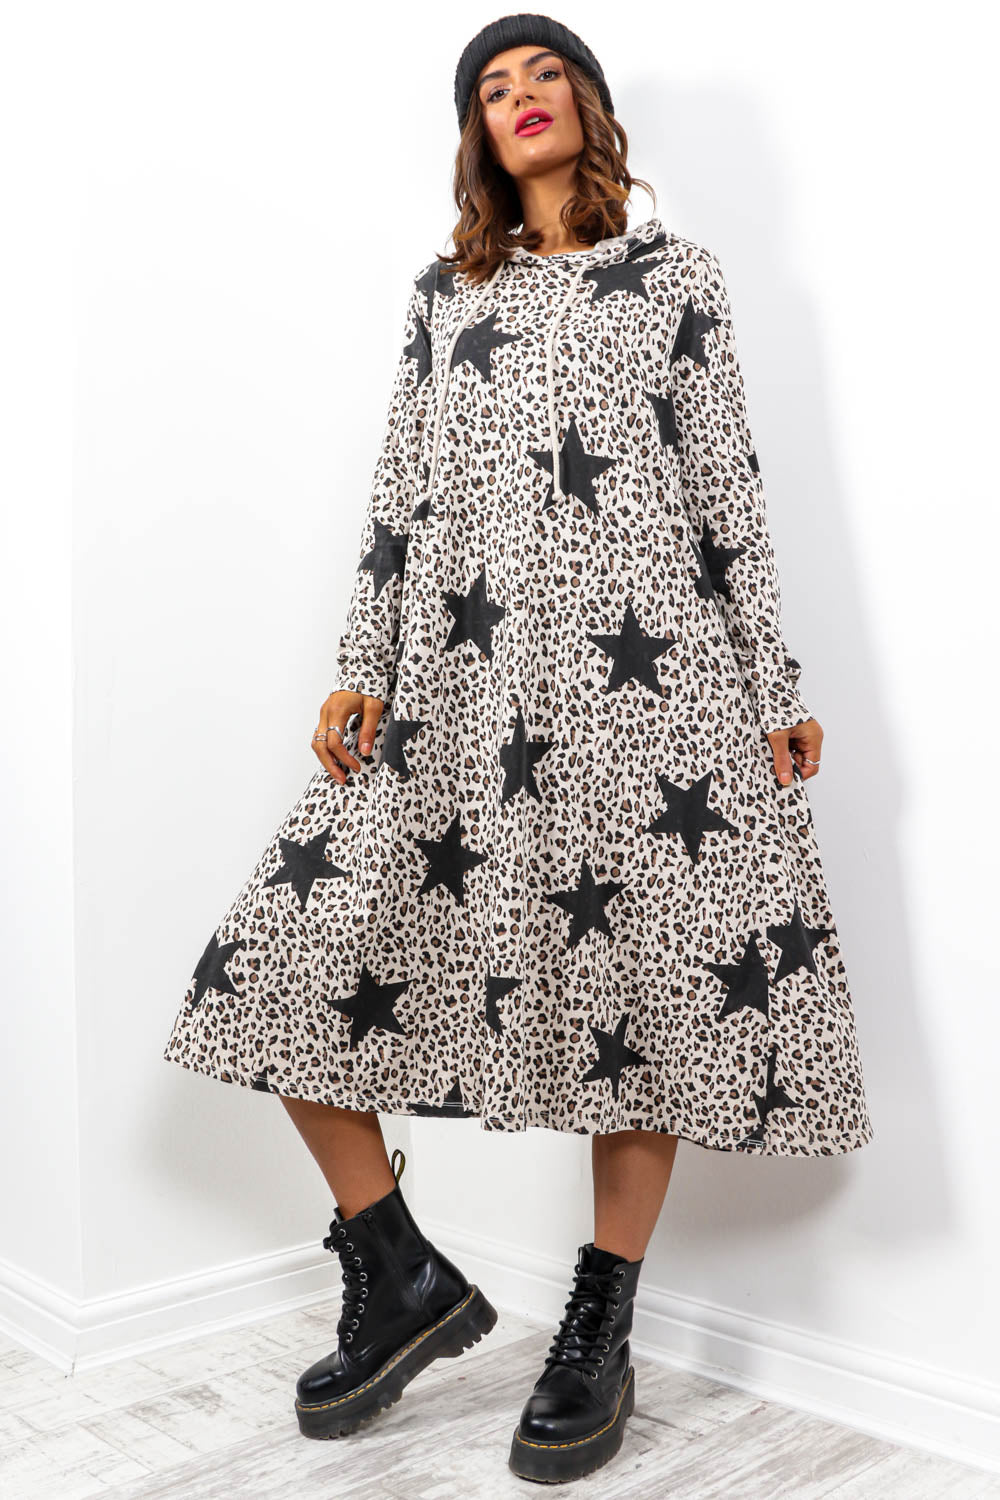 Chill Vibes - Beige Leopard Star Print Hoodie Dress